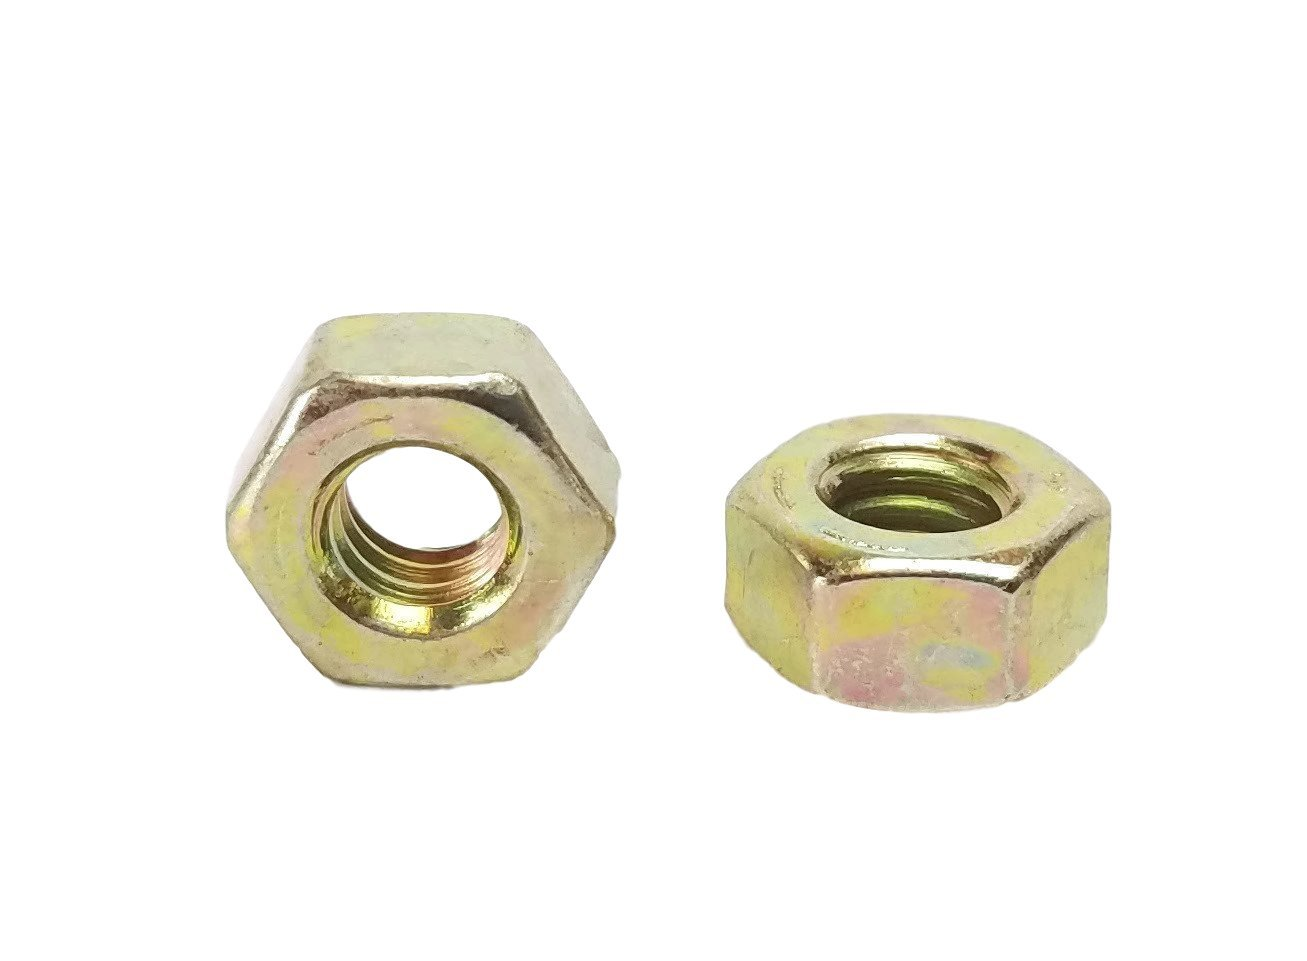 1//4 Hardened USS Flat Washer Grade 8 More Selections in Listing 1//4 USS Flat Washer 50pcs